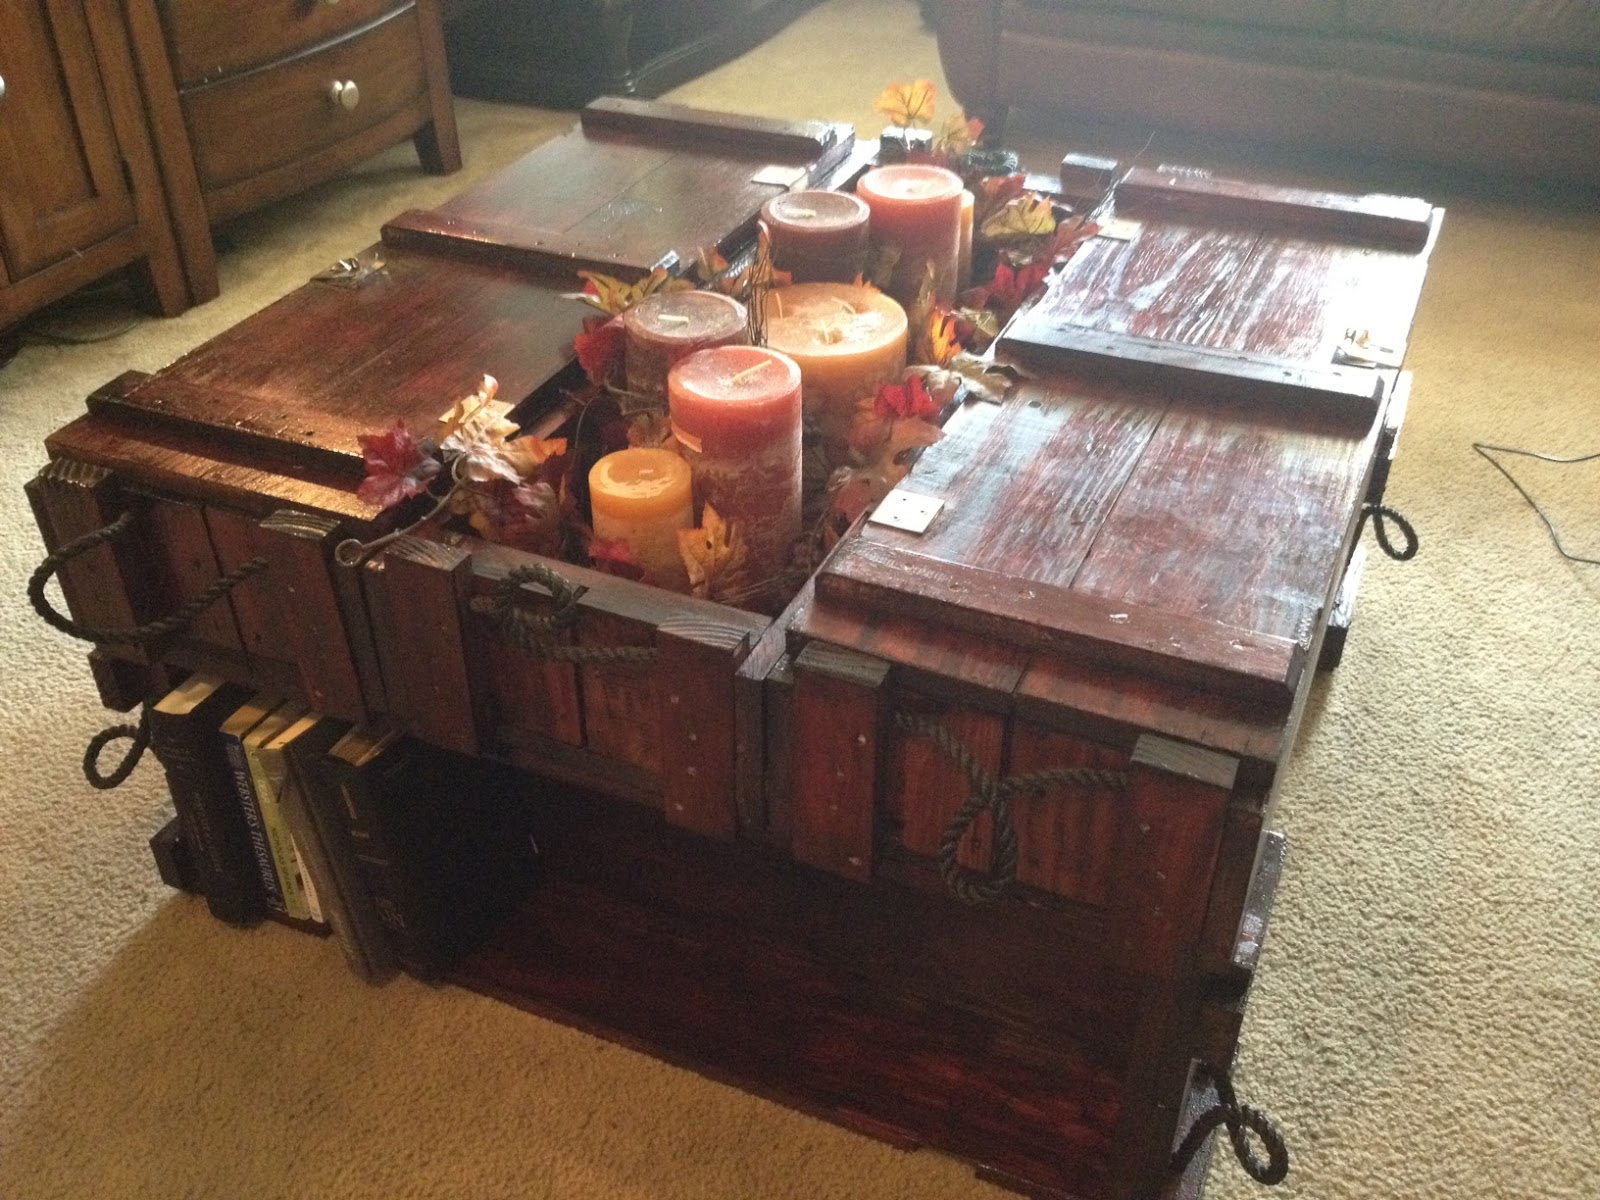 Large New Wooden Storage Box Diy Crates Toy Boxes Set: For The Love Of Butter And All Things Bad.: Ammo Crate